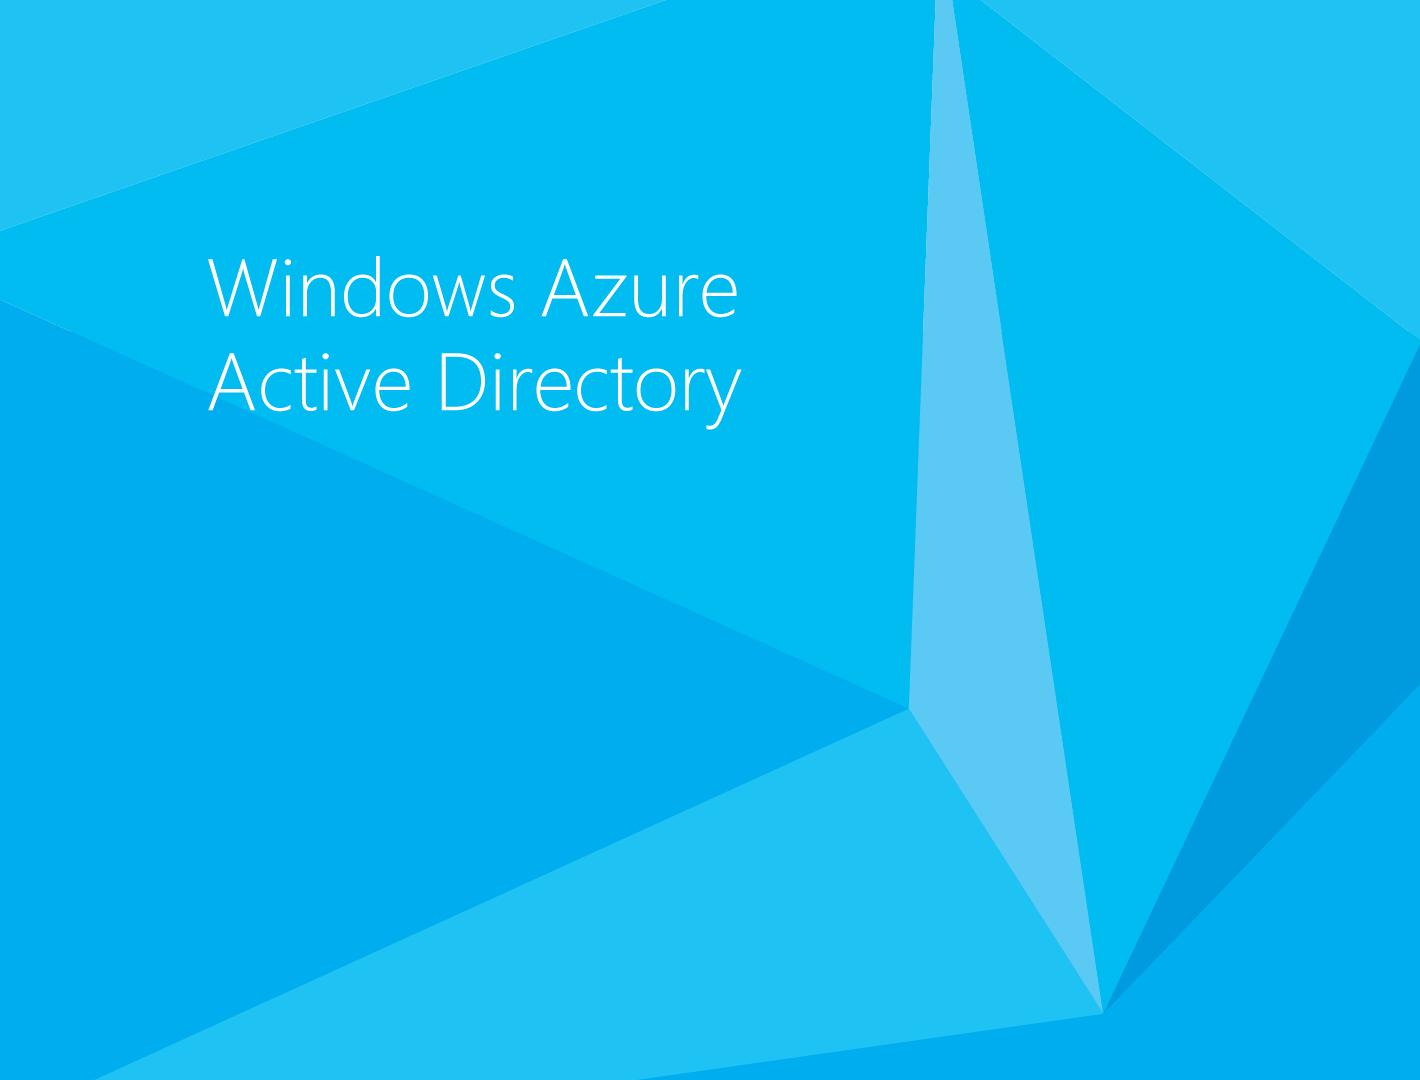 Azure Active Directory - How to get access token for Office 365 from